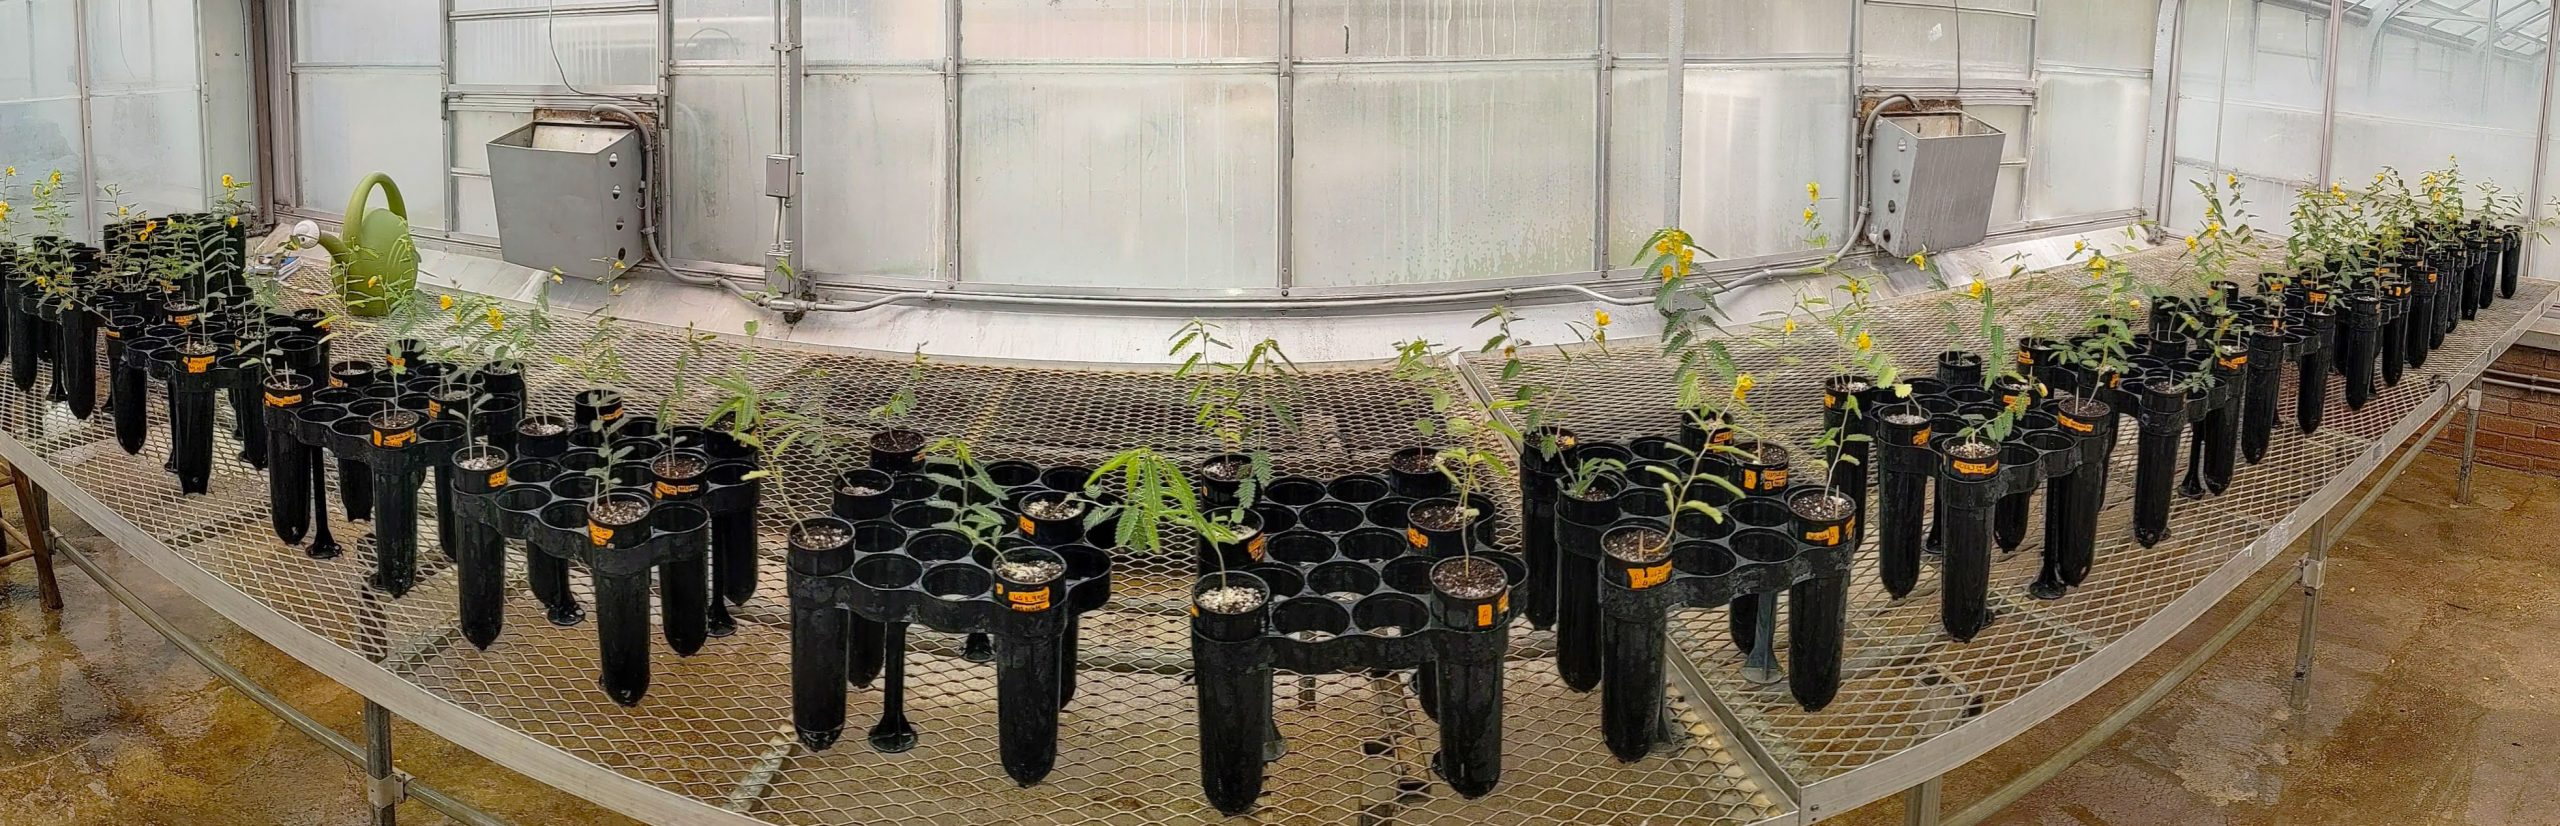 Panorama photo of plants in black plastic pots sitting on a table inside a greenhouse, that are part of Borges's research.